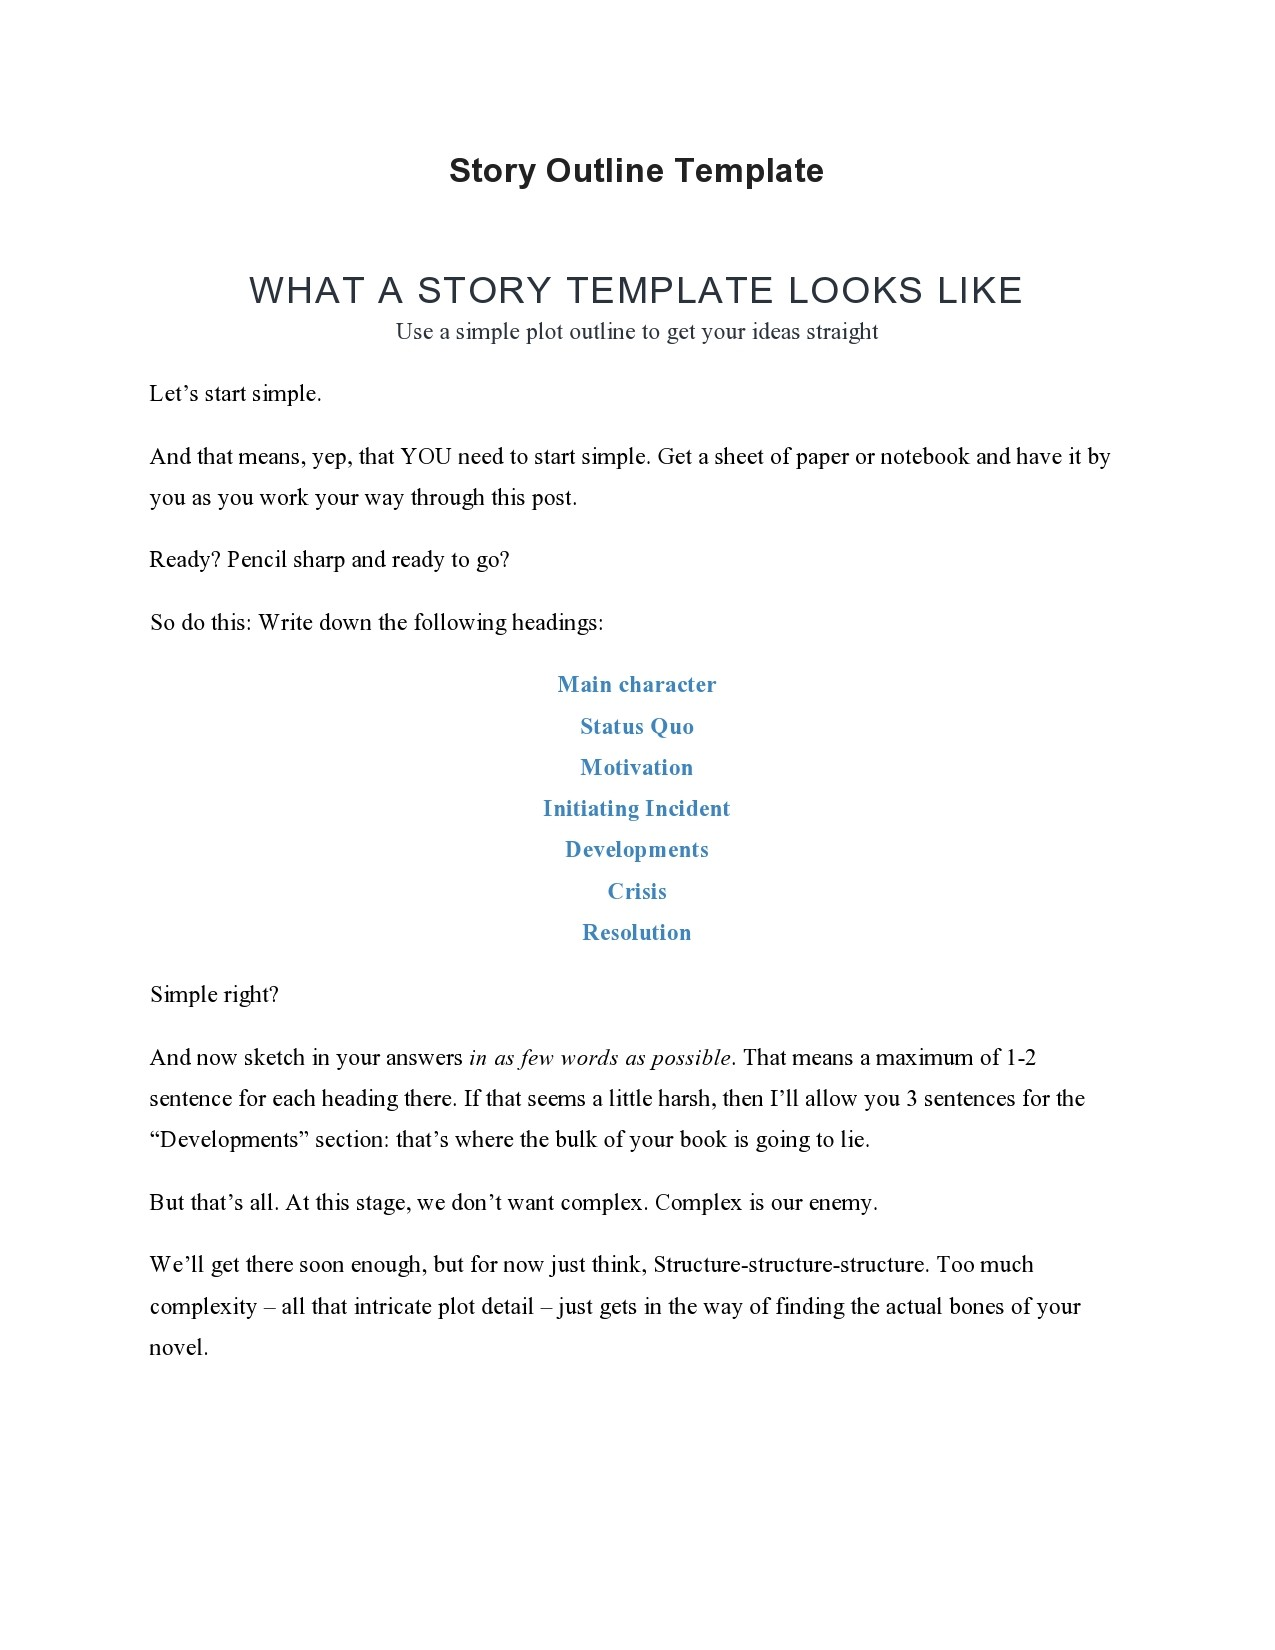 Free story outline template 01